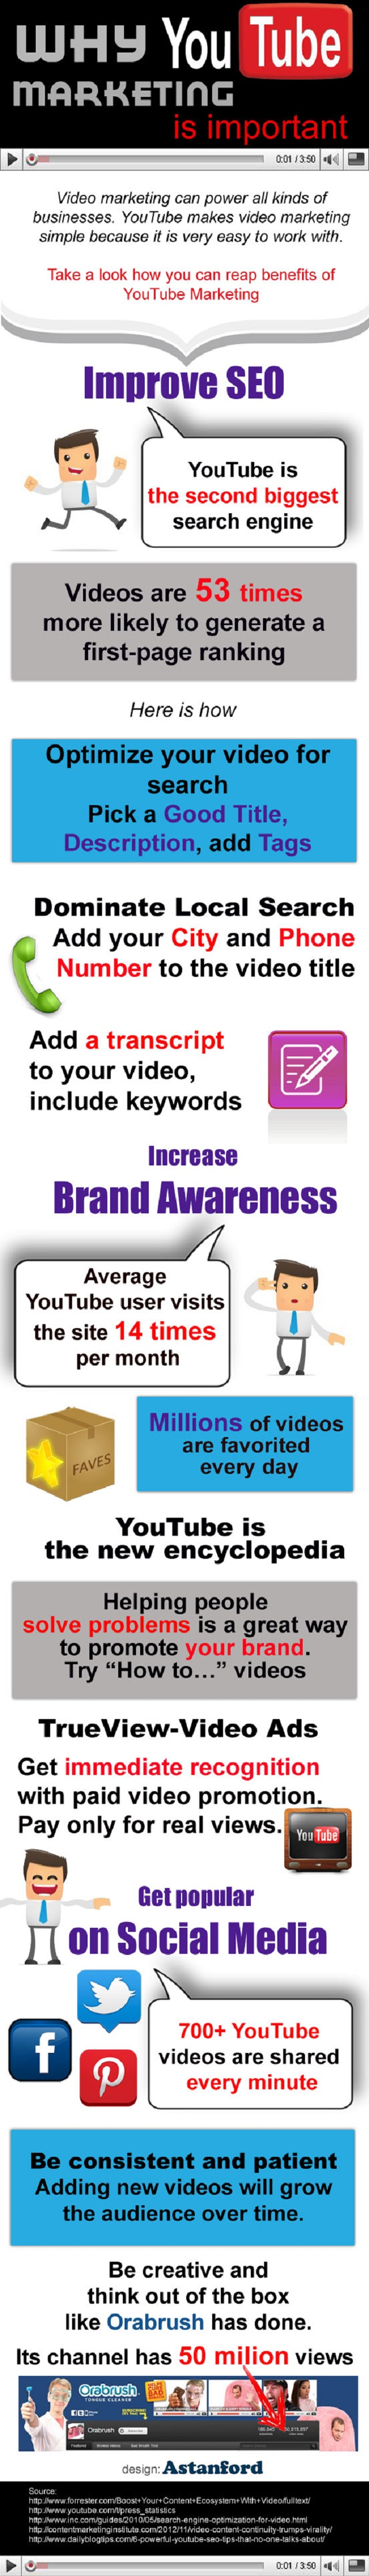 YouTube-Marketing, Video-Marketing